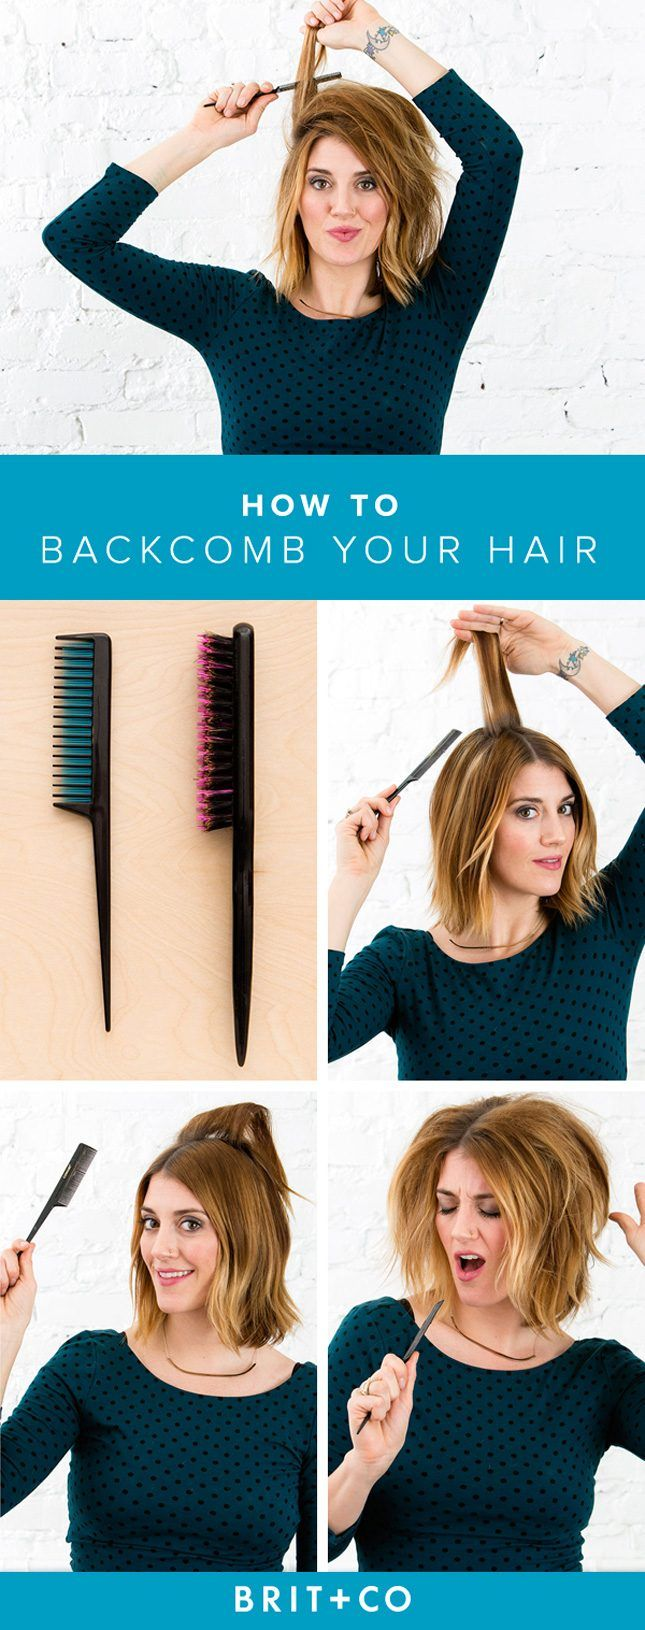 This Is the 1 Trick You Need to Make Every Hairstyle Look Better